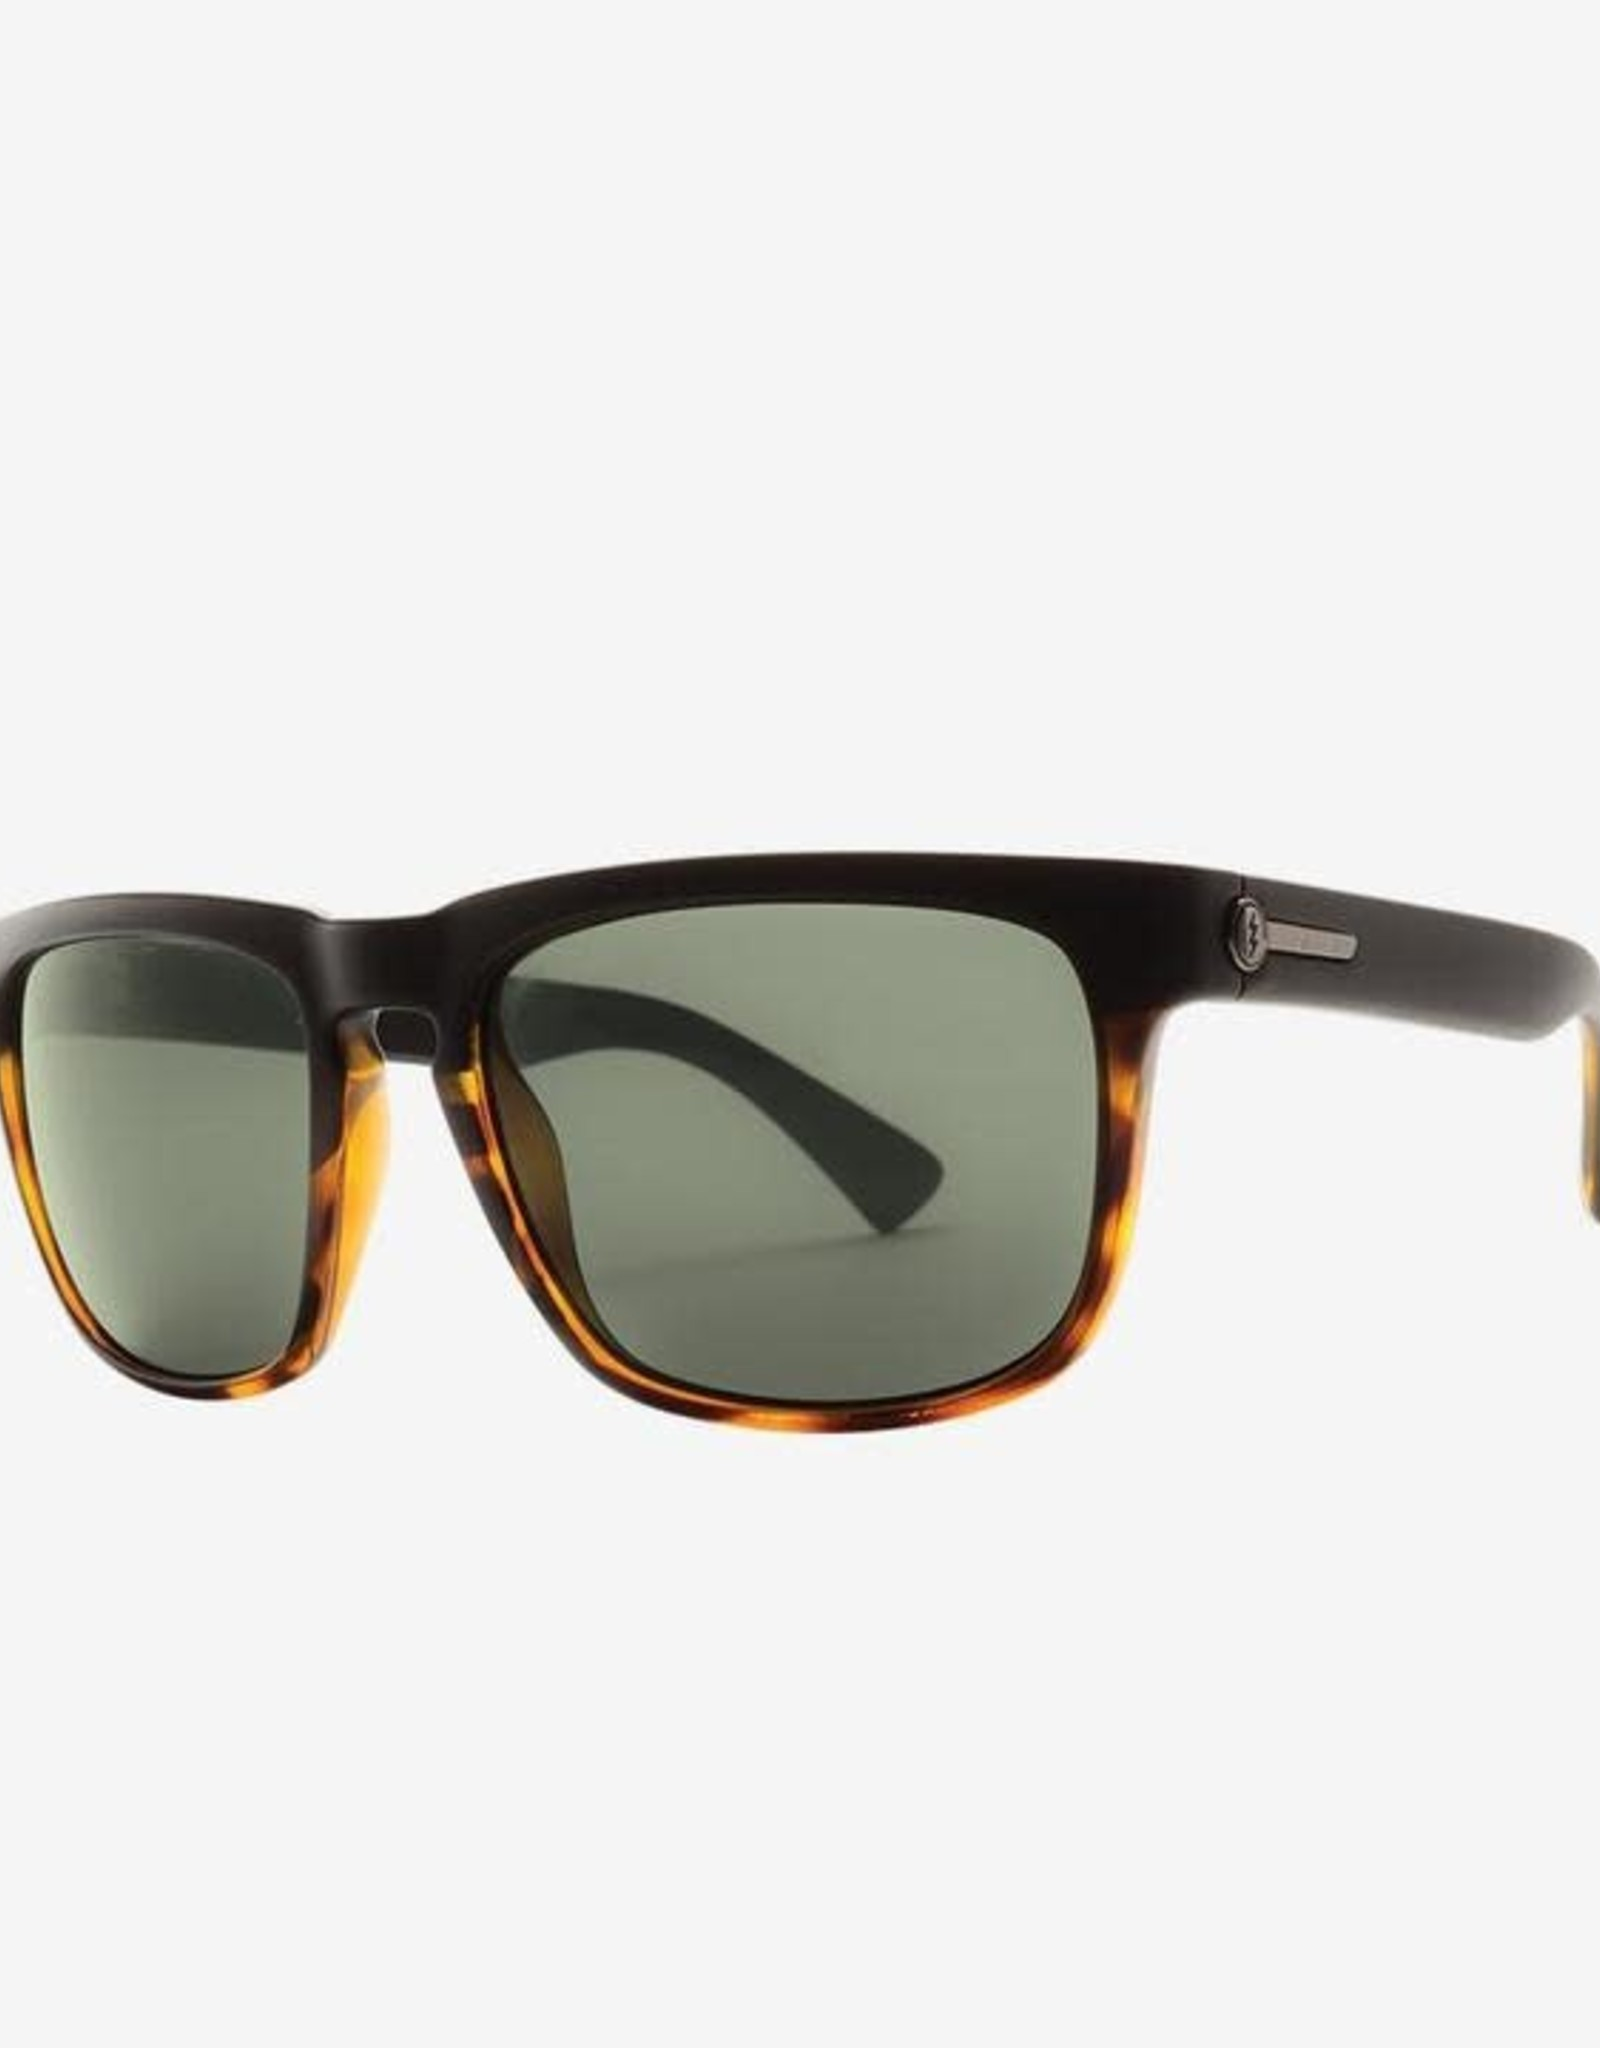 Electric Visual Electric - KNOXVILLE - Darkside Tort w/ POLAR Grey